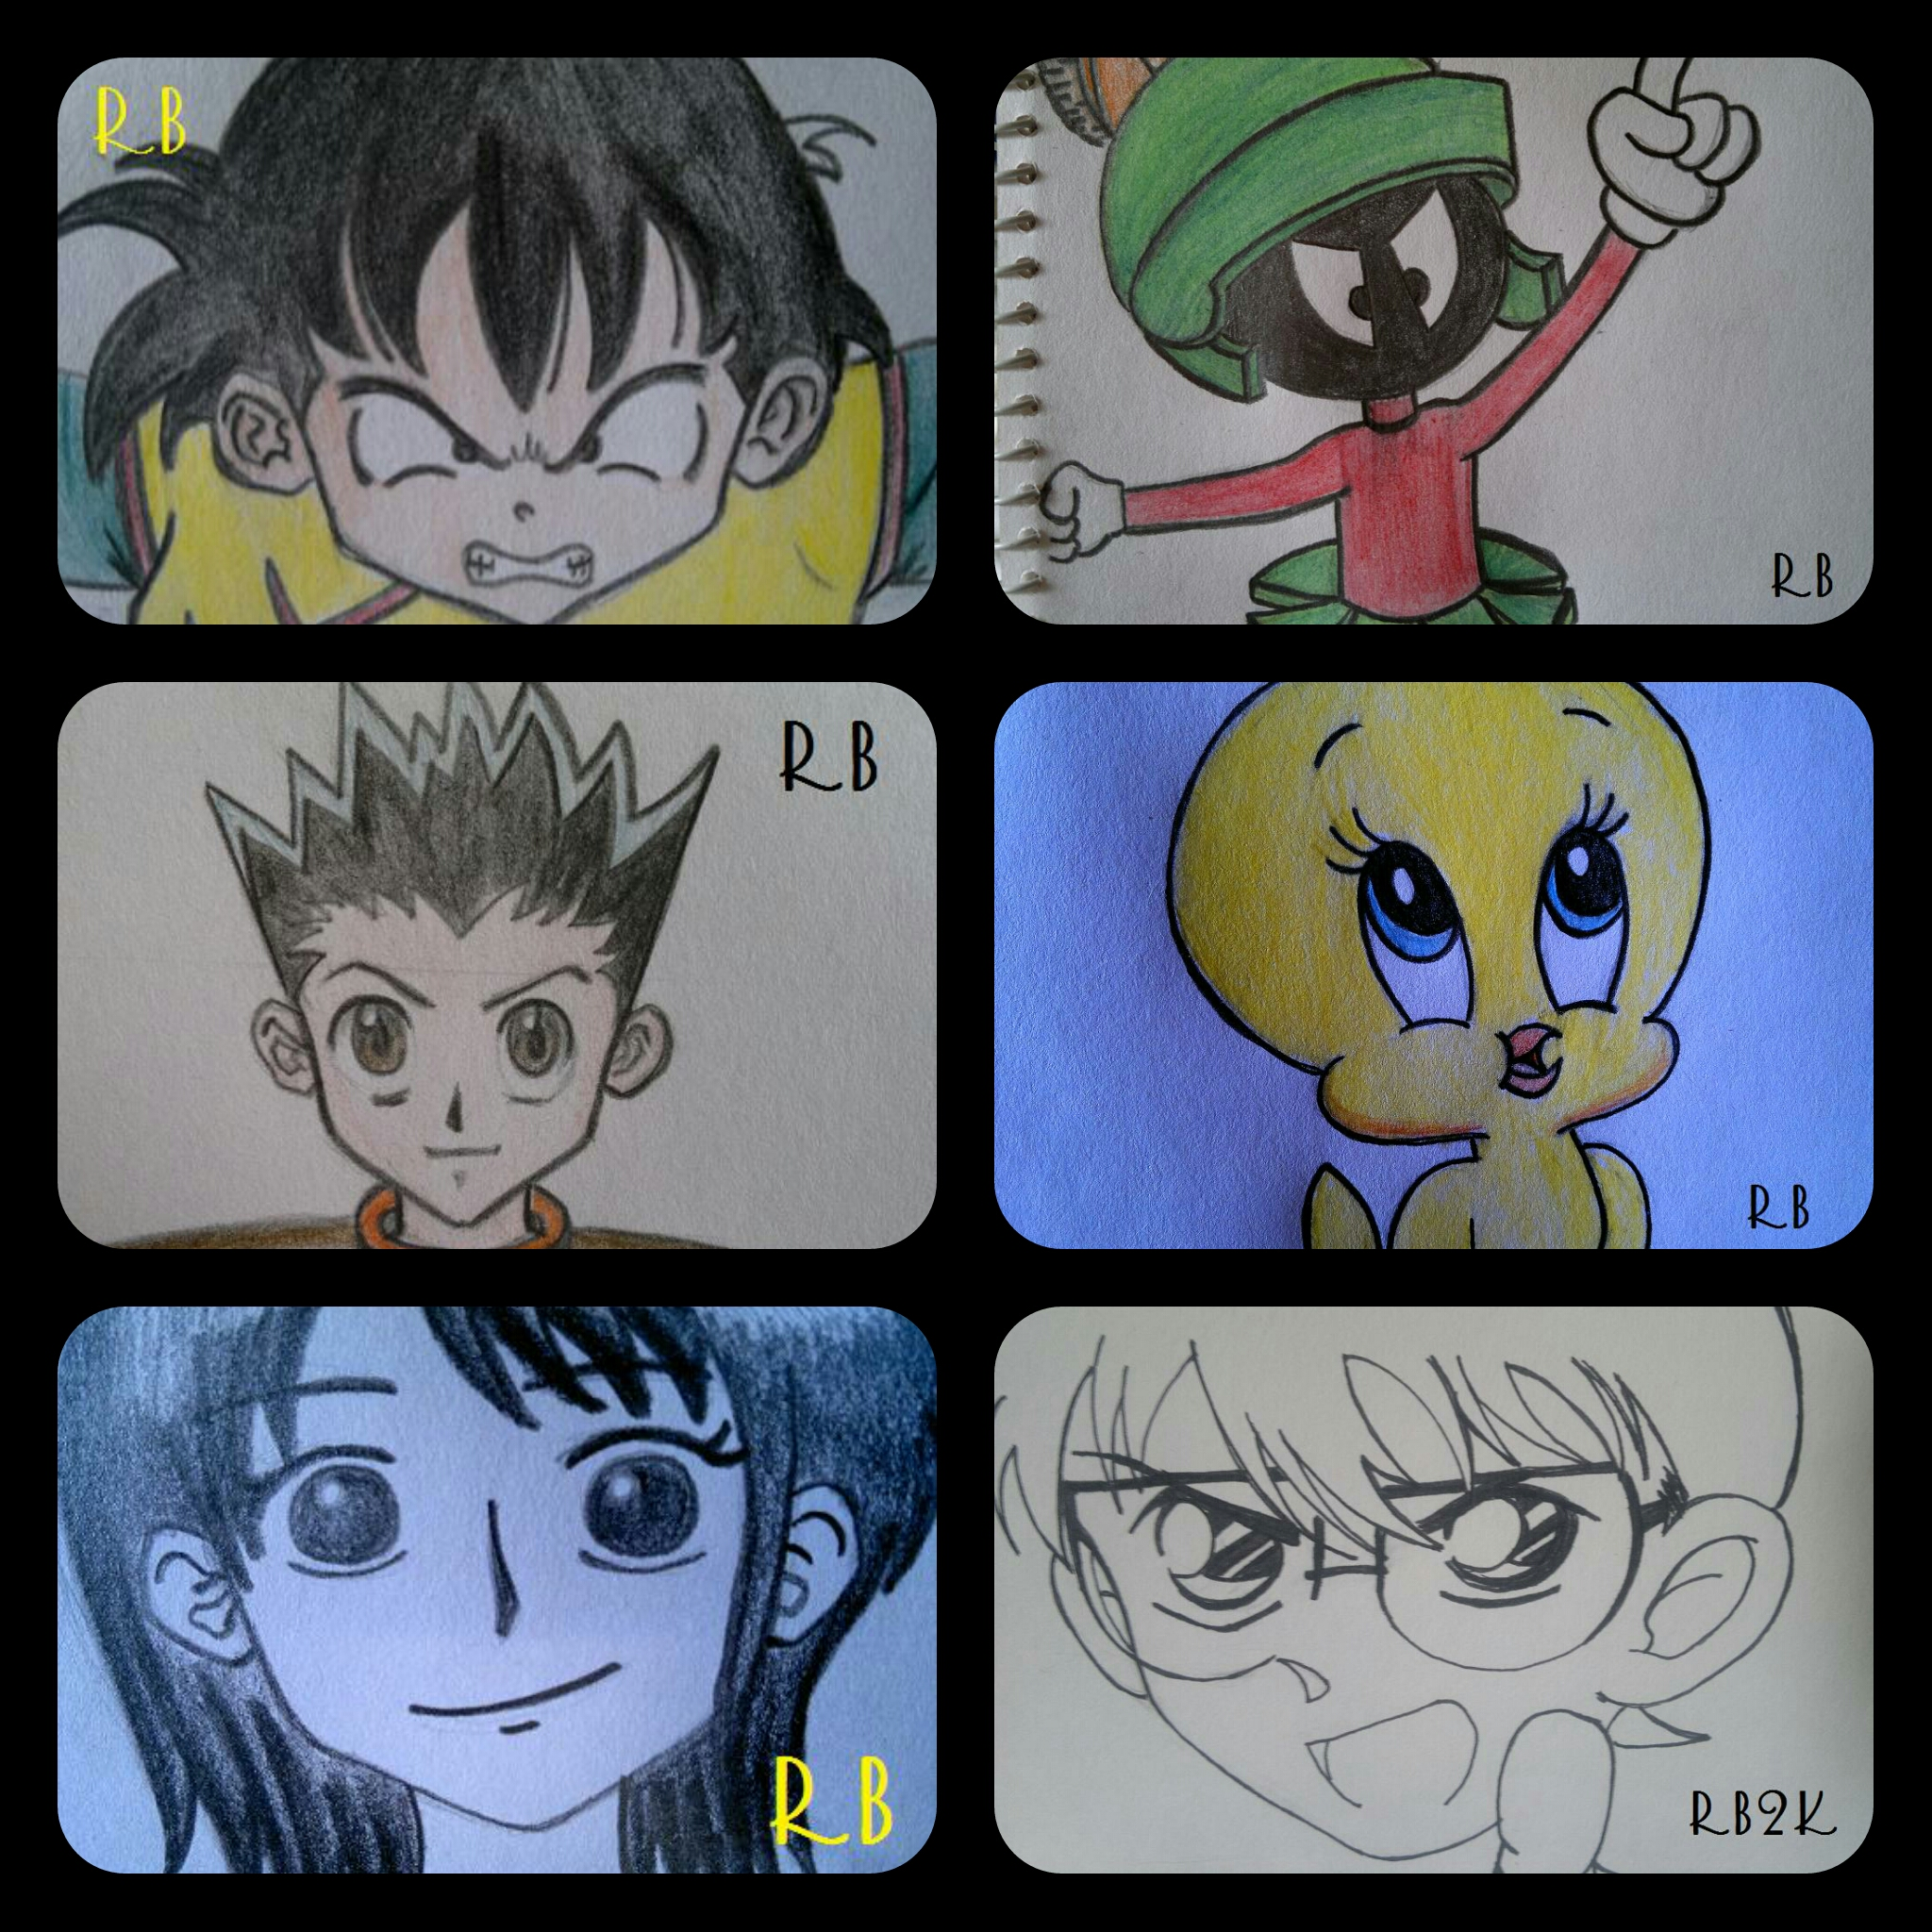 My drawings